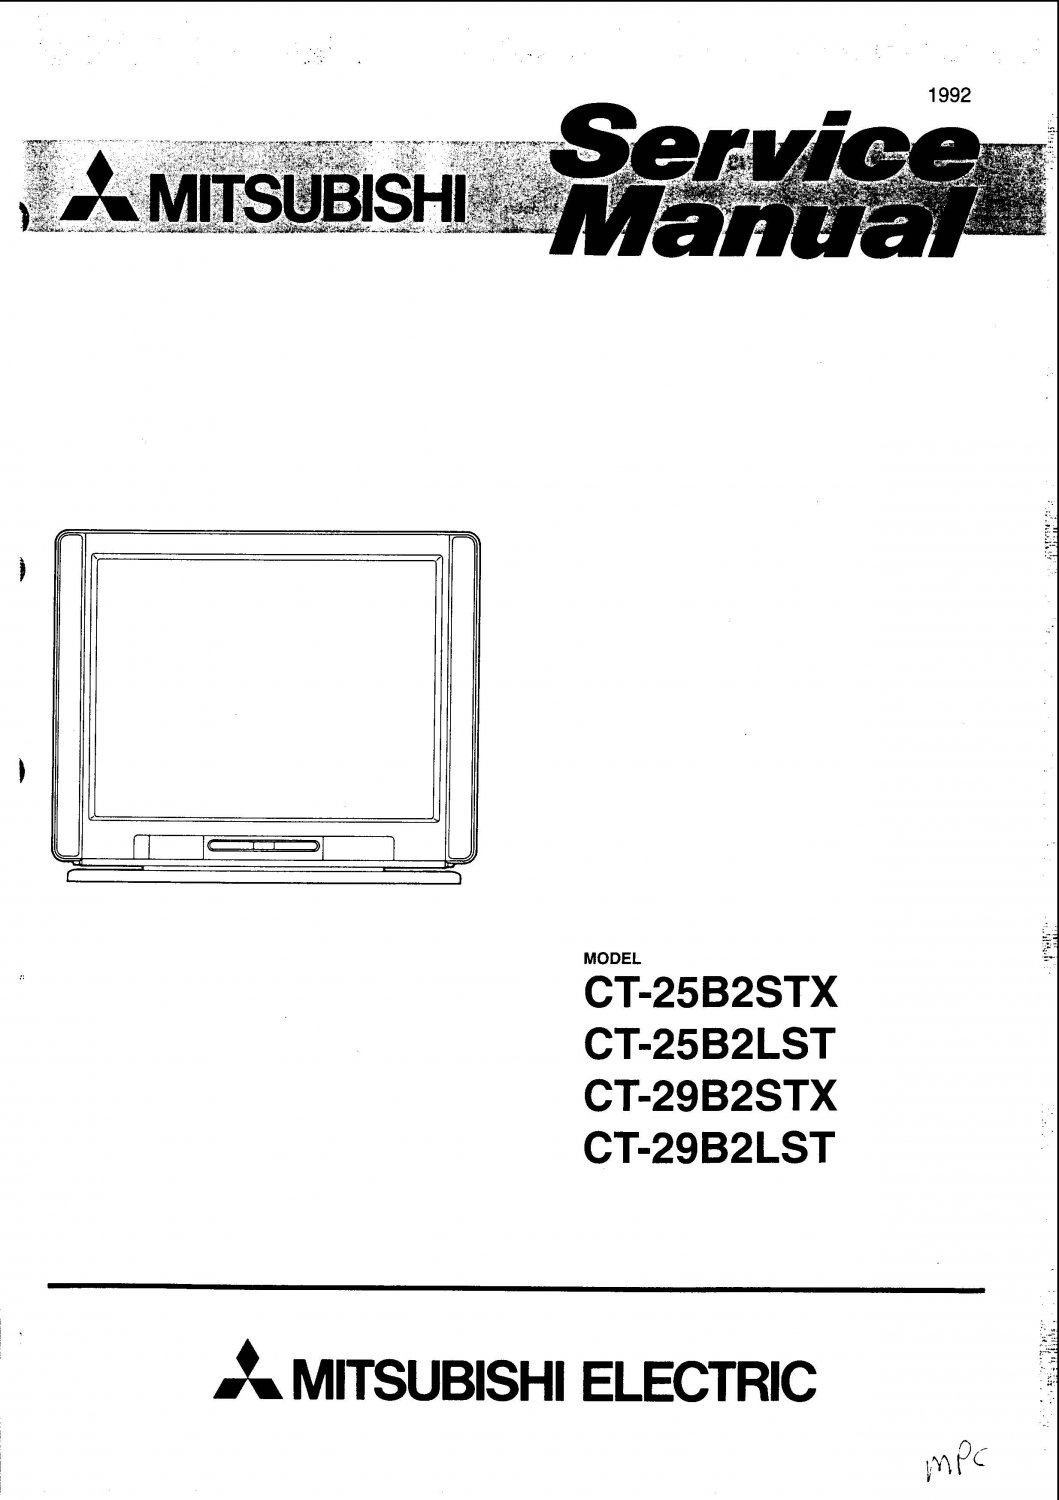 Mitsubishi CT29B2LST Television Service Manual PDF download.